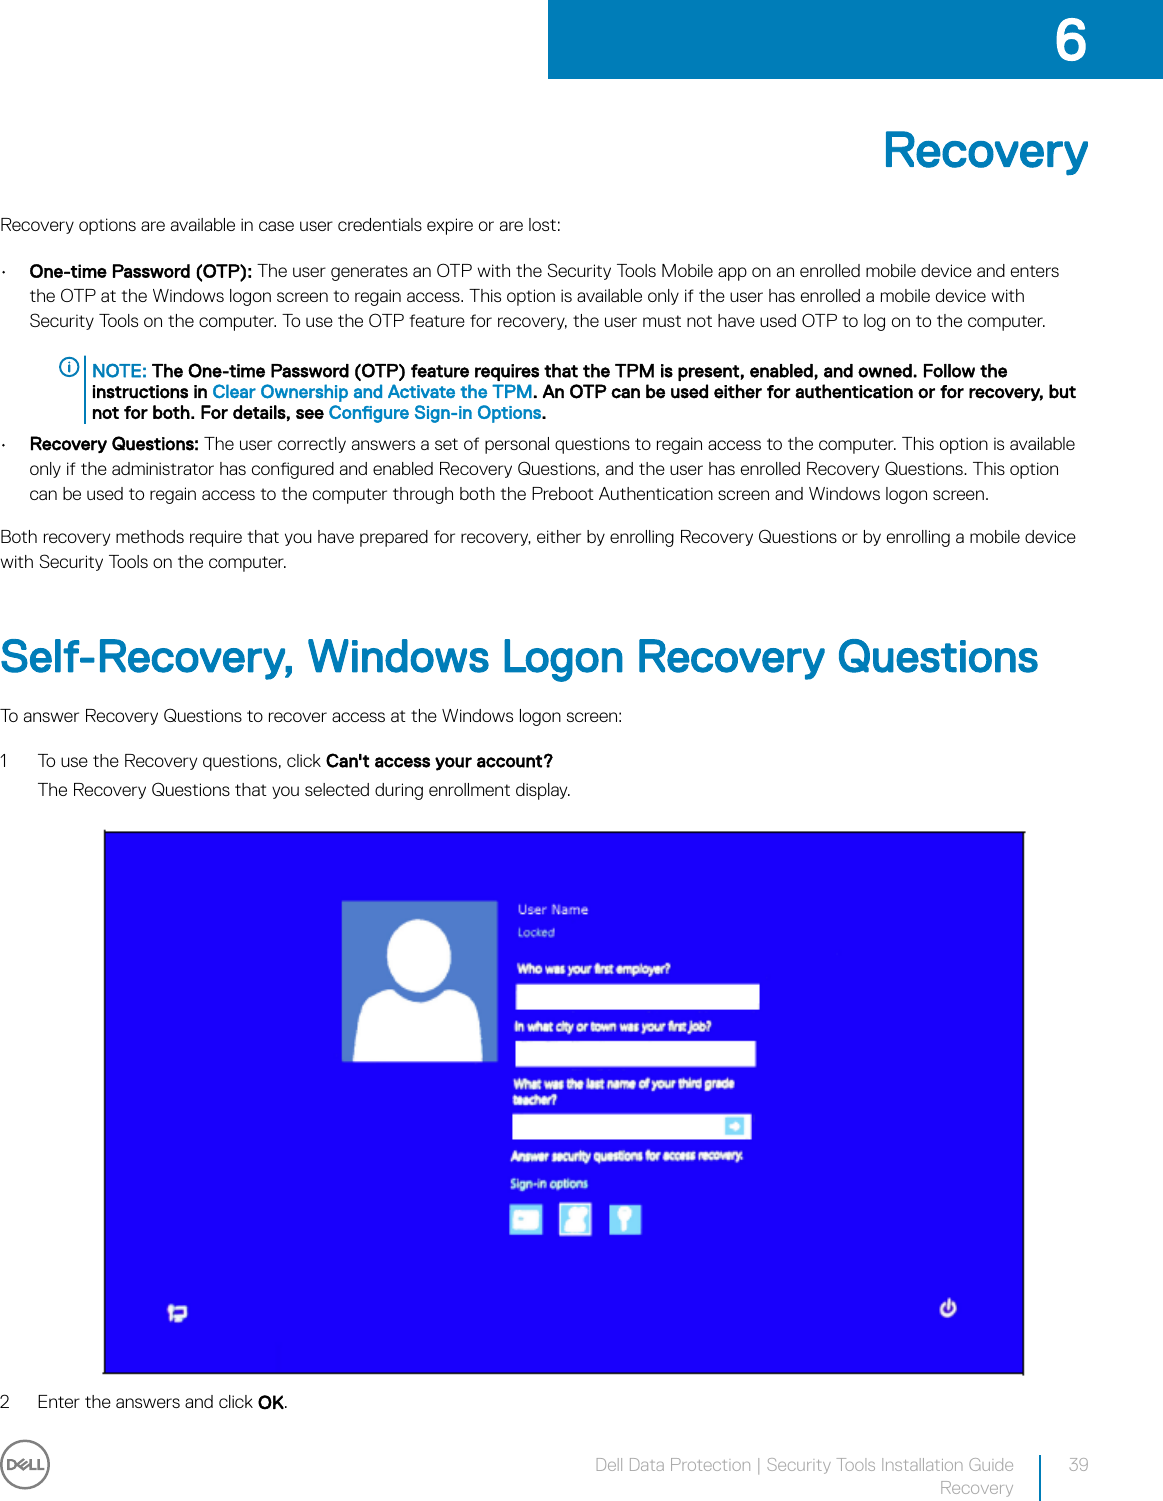 Dell data protection security tools | Installation Guide V1